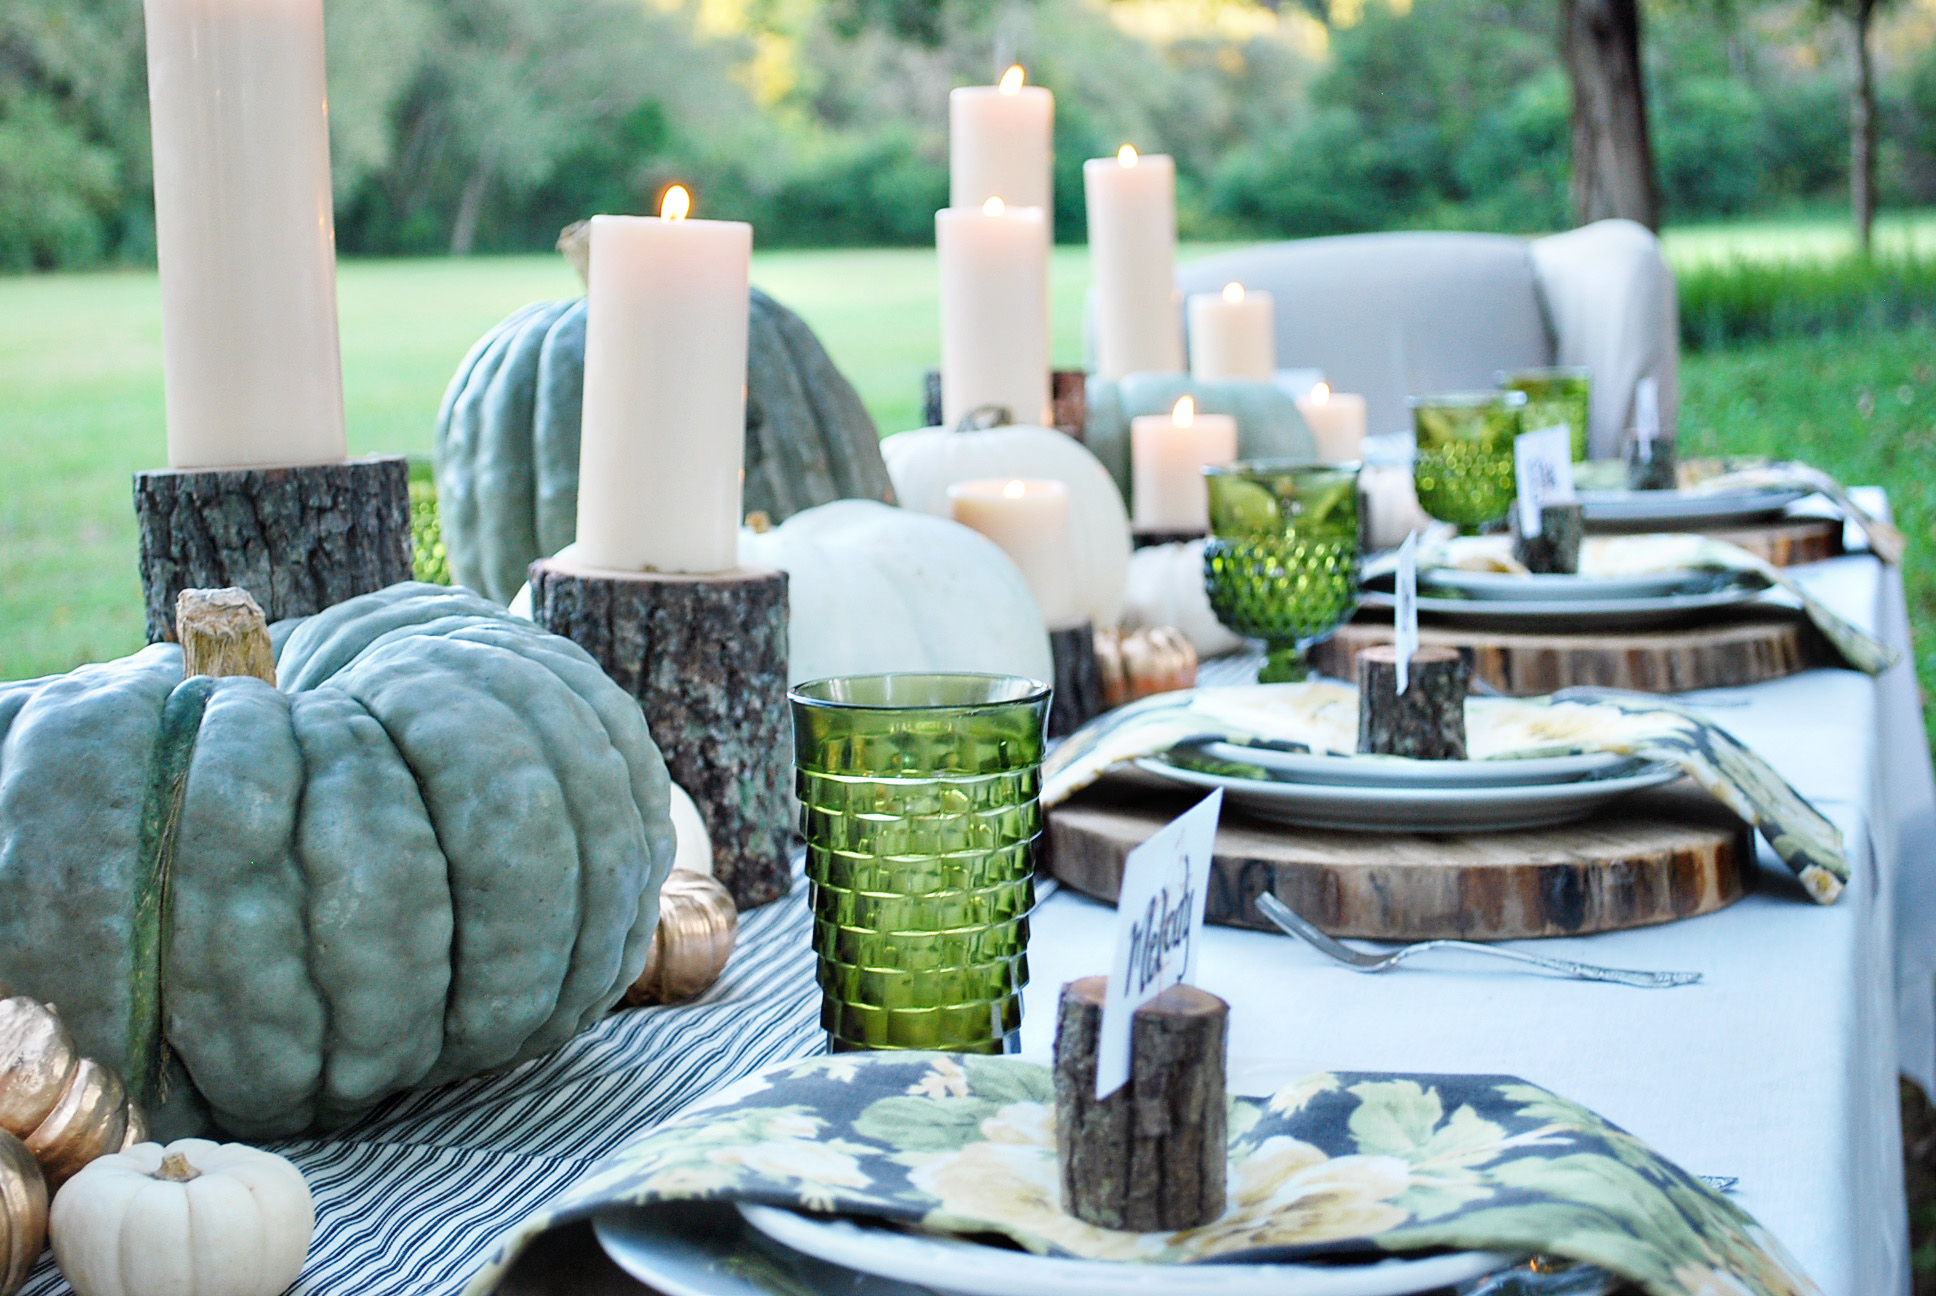 Log Candle Holders | Thanksgiving Table Settings And Decor Ideas To WOW Your Guests